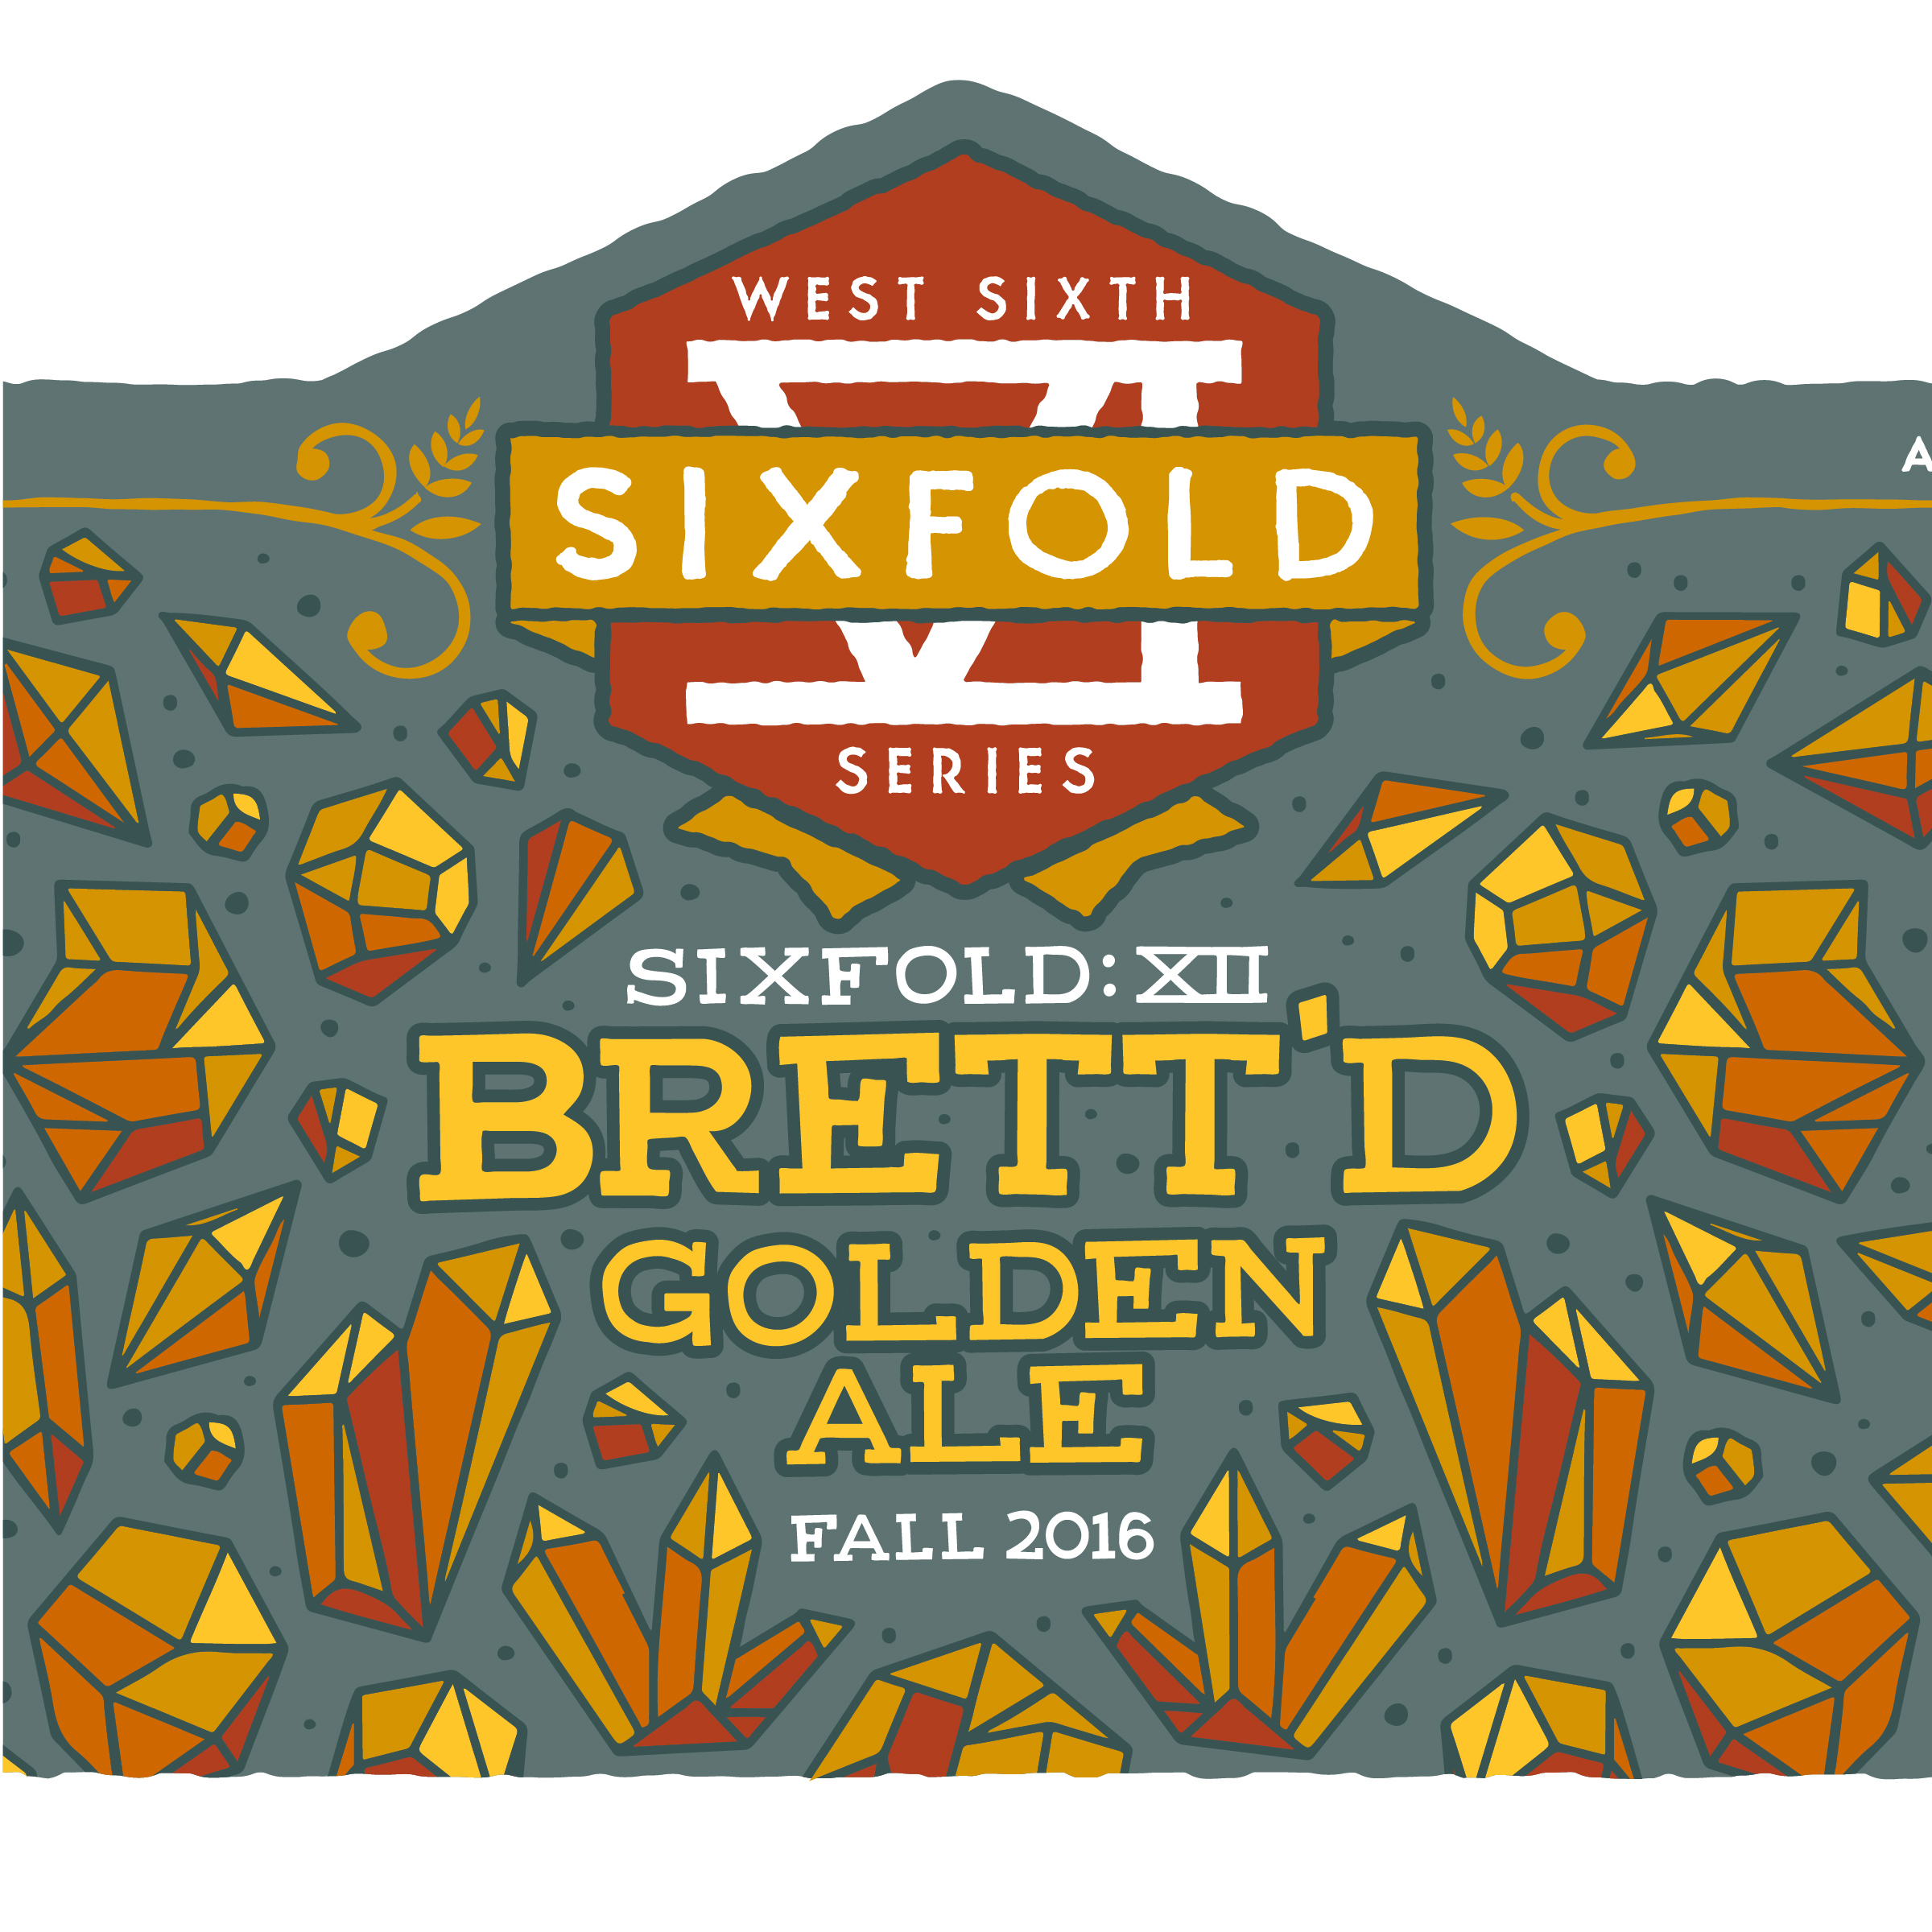 Website Bottle_Sixfold XII Brettd Golden Ale_Artboard 1.jpg